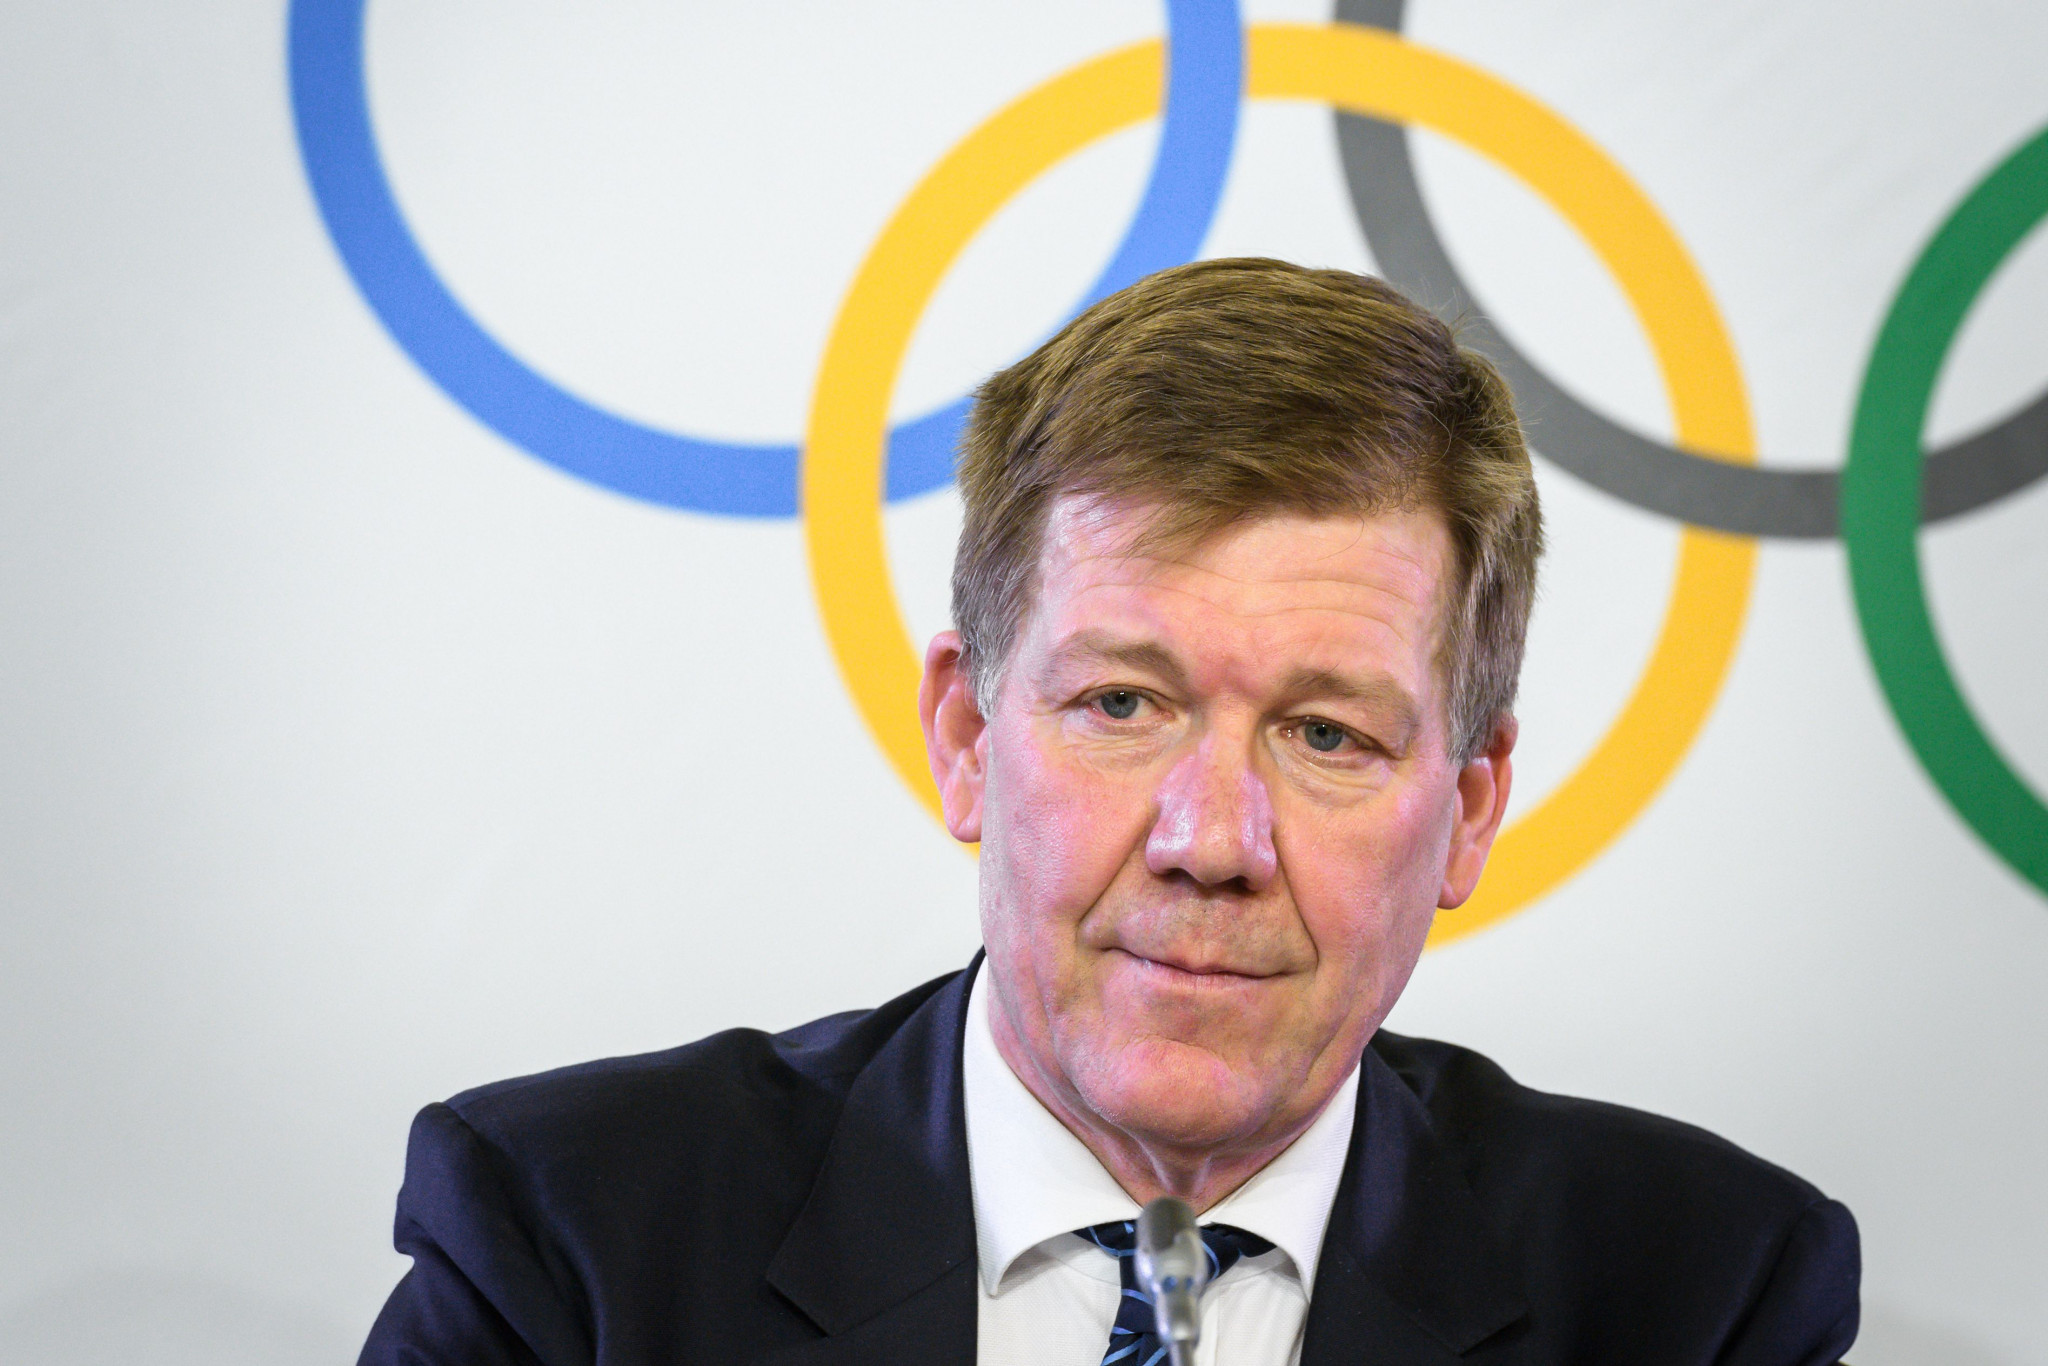 IOC targeting 20,000 drug tests before Pyeongchang 2018